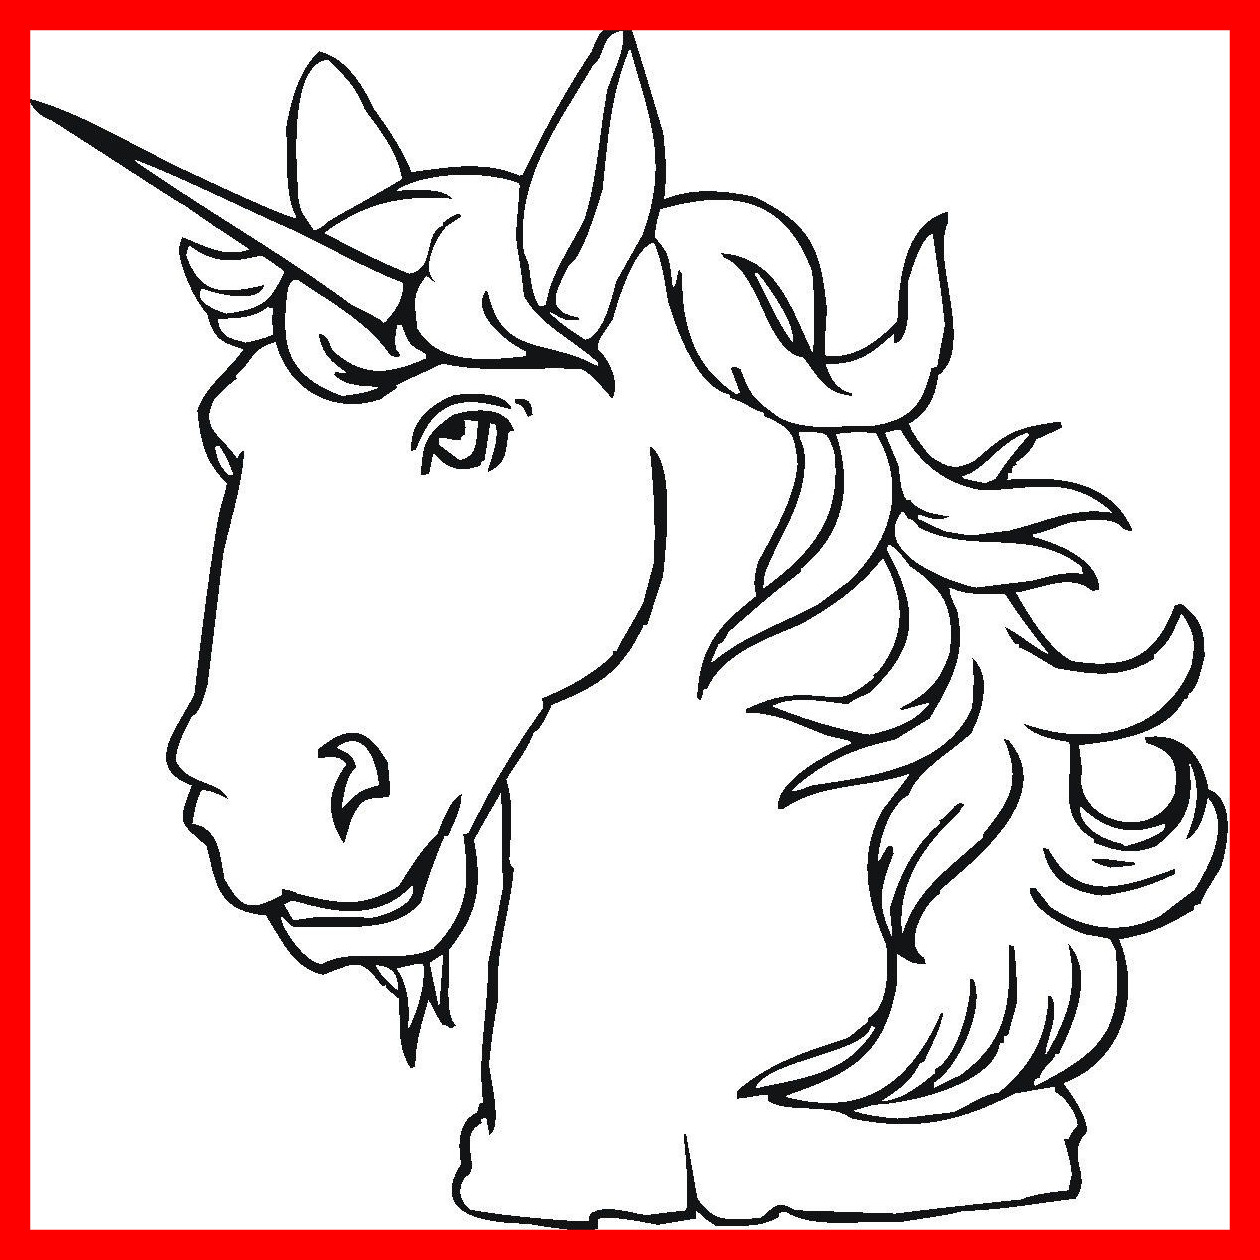 1260x1260 Awesome Horse Head Coloring Pages Lifeafterdeportation Org Pict